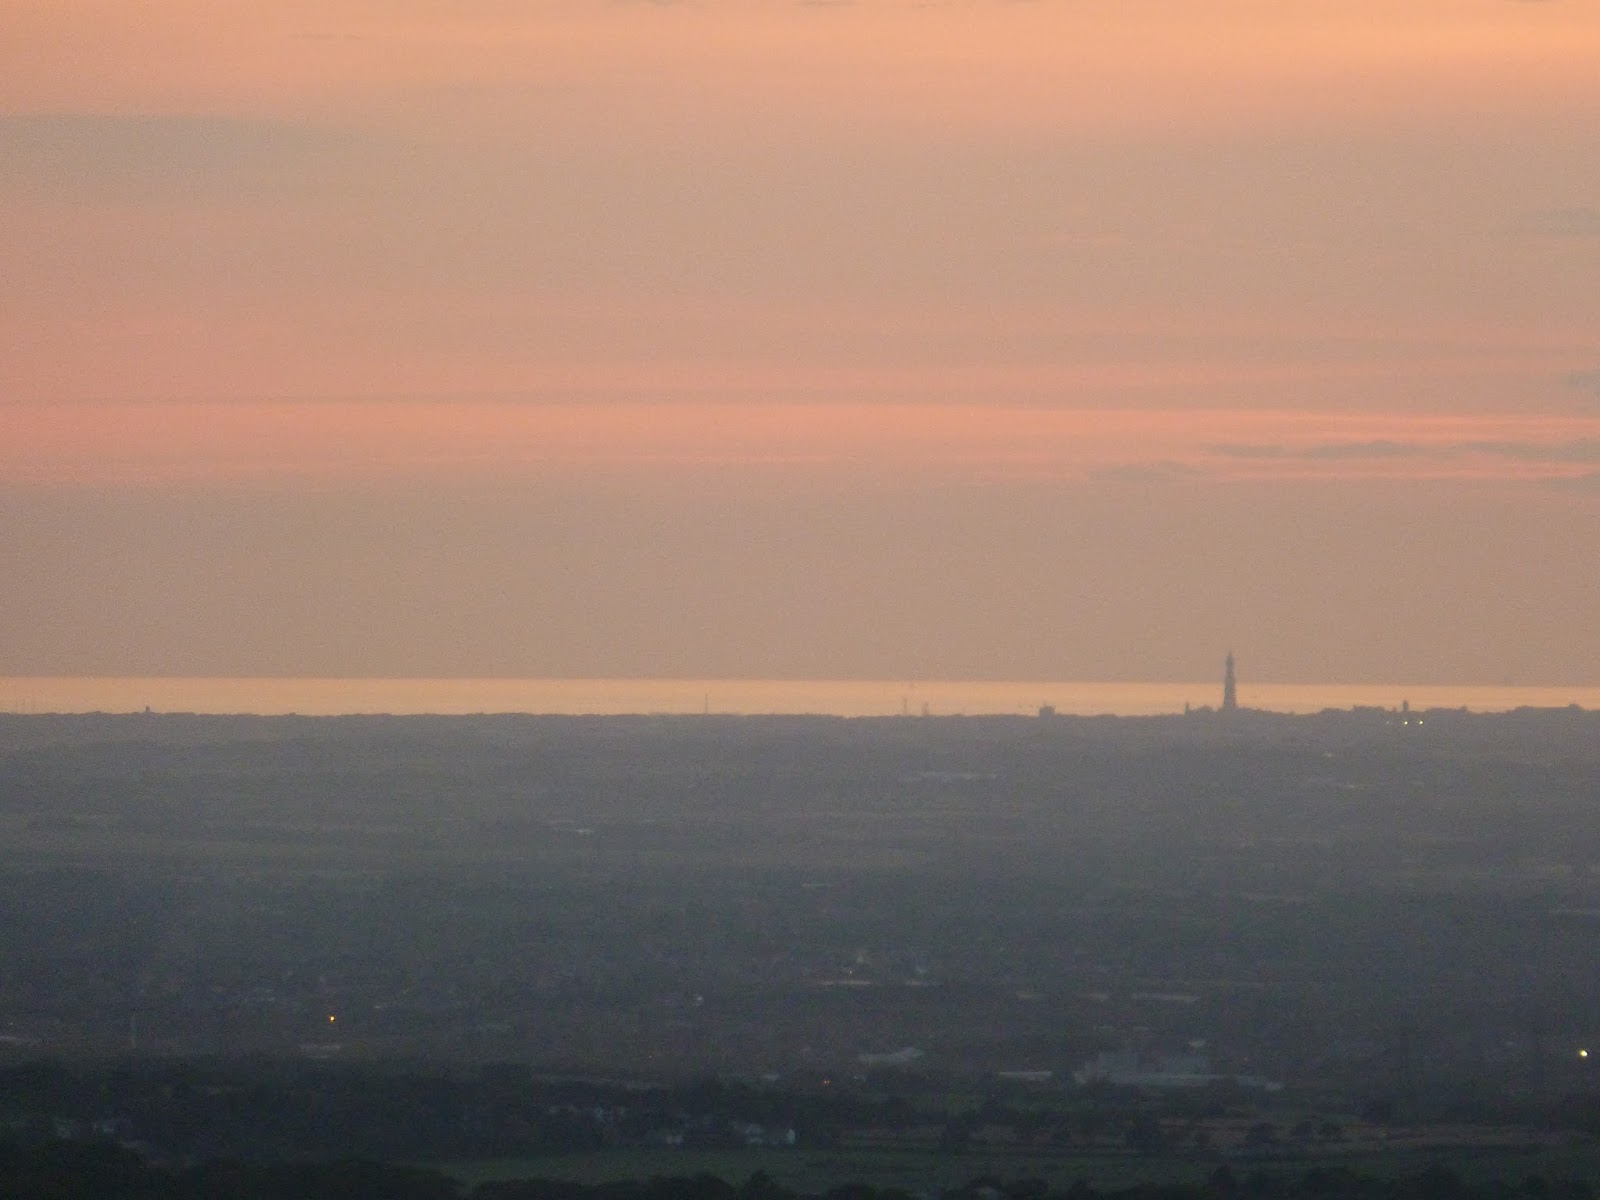 sunset and view of blackpool tower from the distance